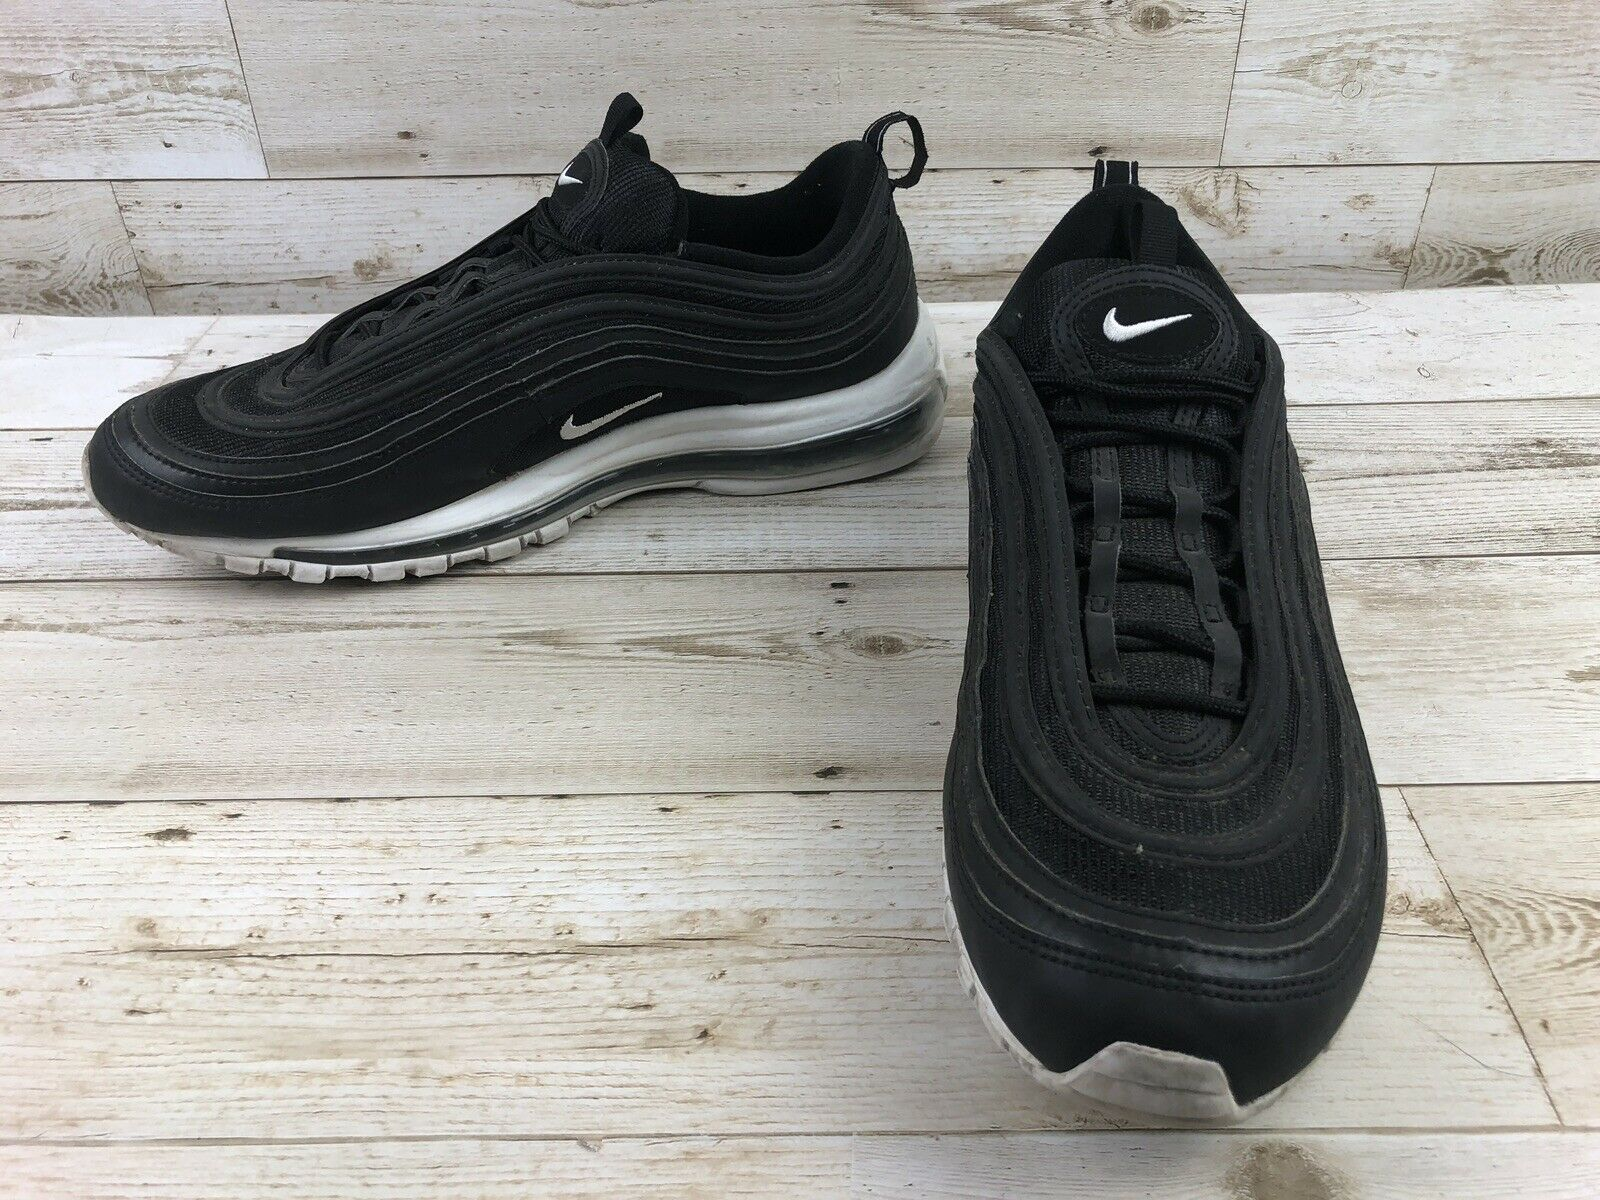 Mens Nike Air Max 97 Black Nocturnal Running shoes Size 12.5 Sneakers 921826-001